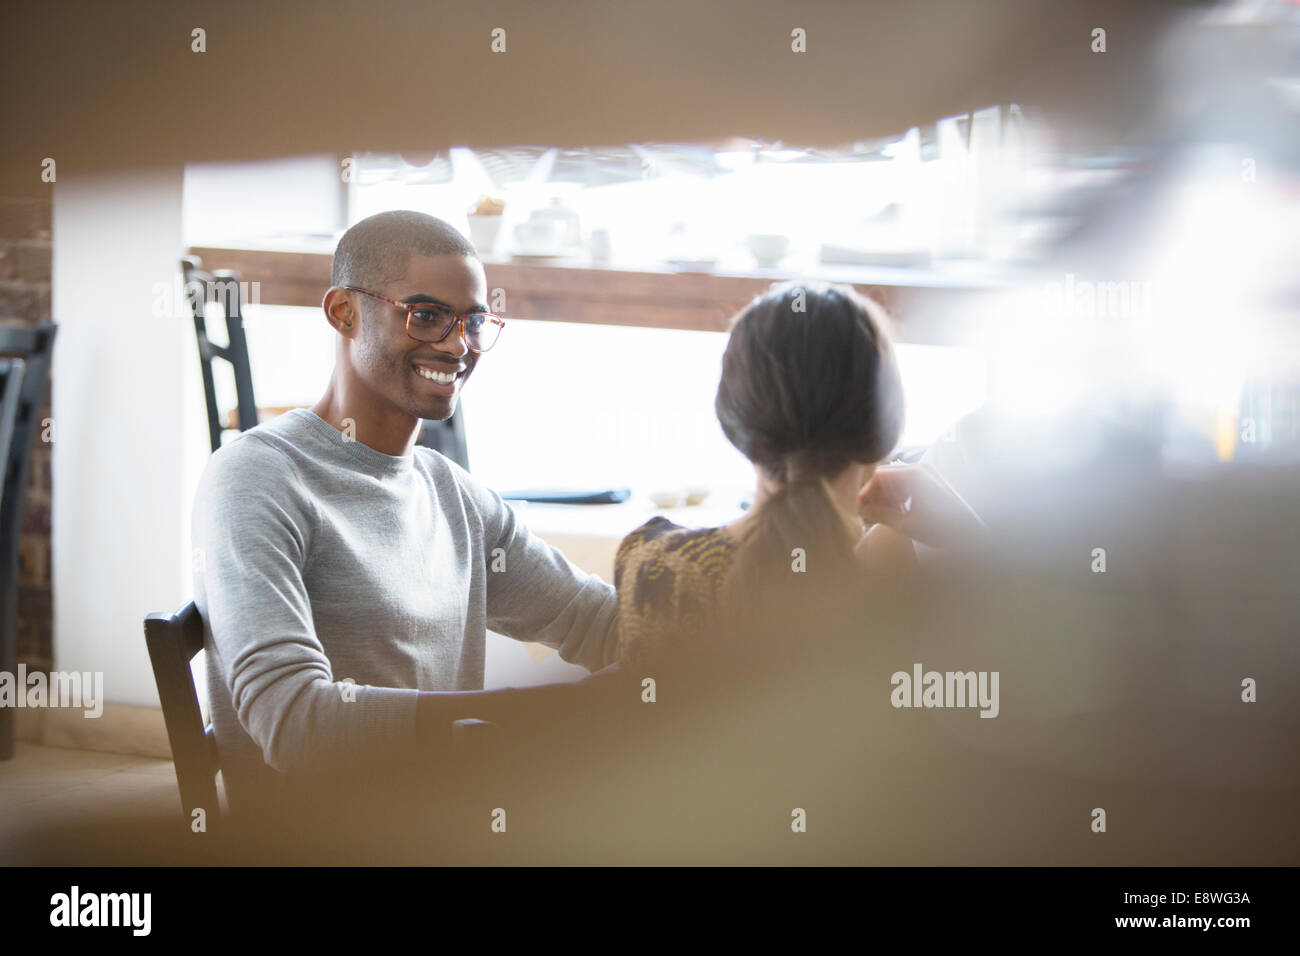 Couple talking in cafe - Stock Image